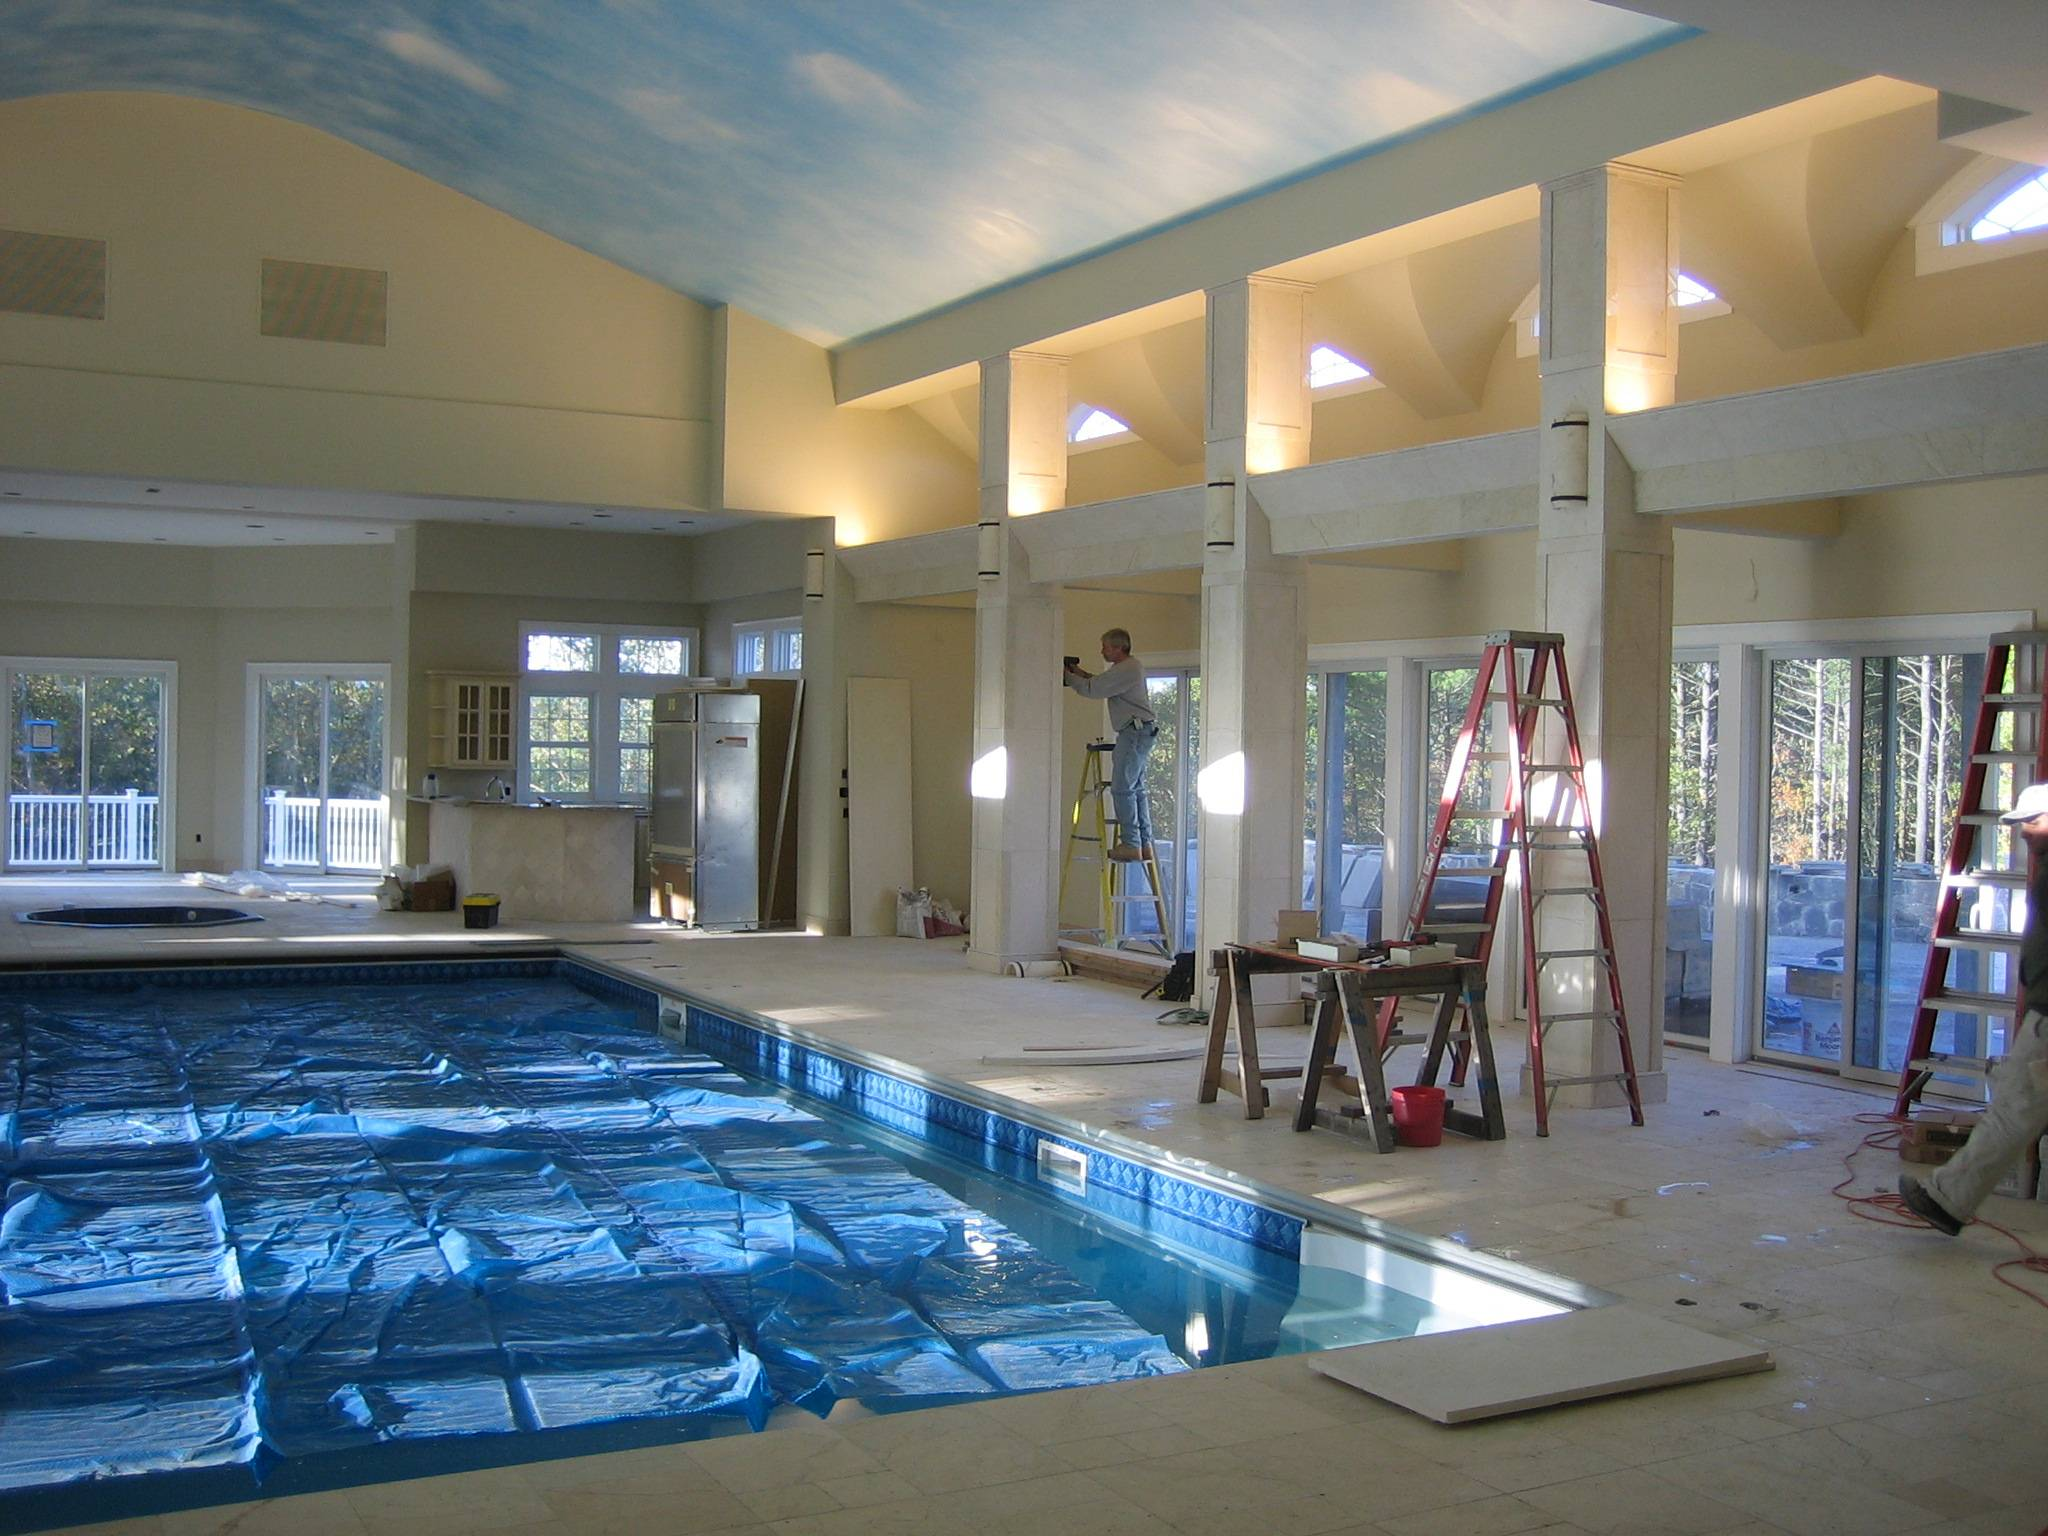 Houses with pools inside - Nice Houses Indoor Pools Build Pool House